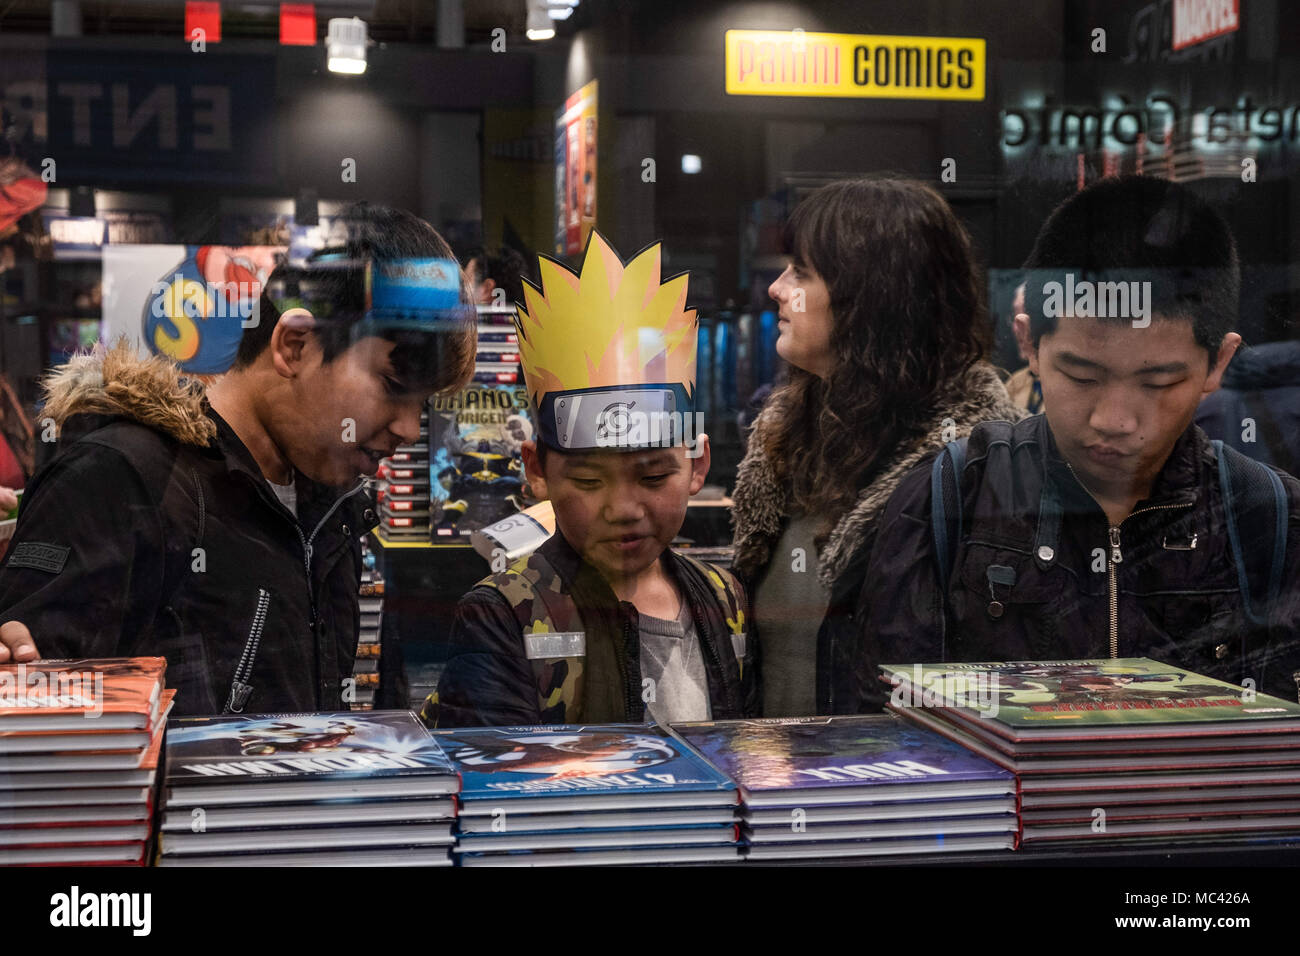 April 12, 2018 - Barcelona, Catalonia, Spain - Several children seen watching comics books. Opening of the 36th Barcelona International Comic Fair from 12th-15th April 2018 in Fira Barcelona Montjuïc. (Credit Image: © Paco Freire/SOPA Images via ZUMA Wire) Stock Photo